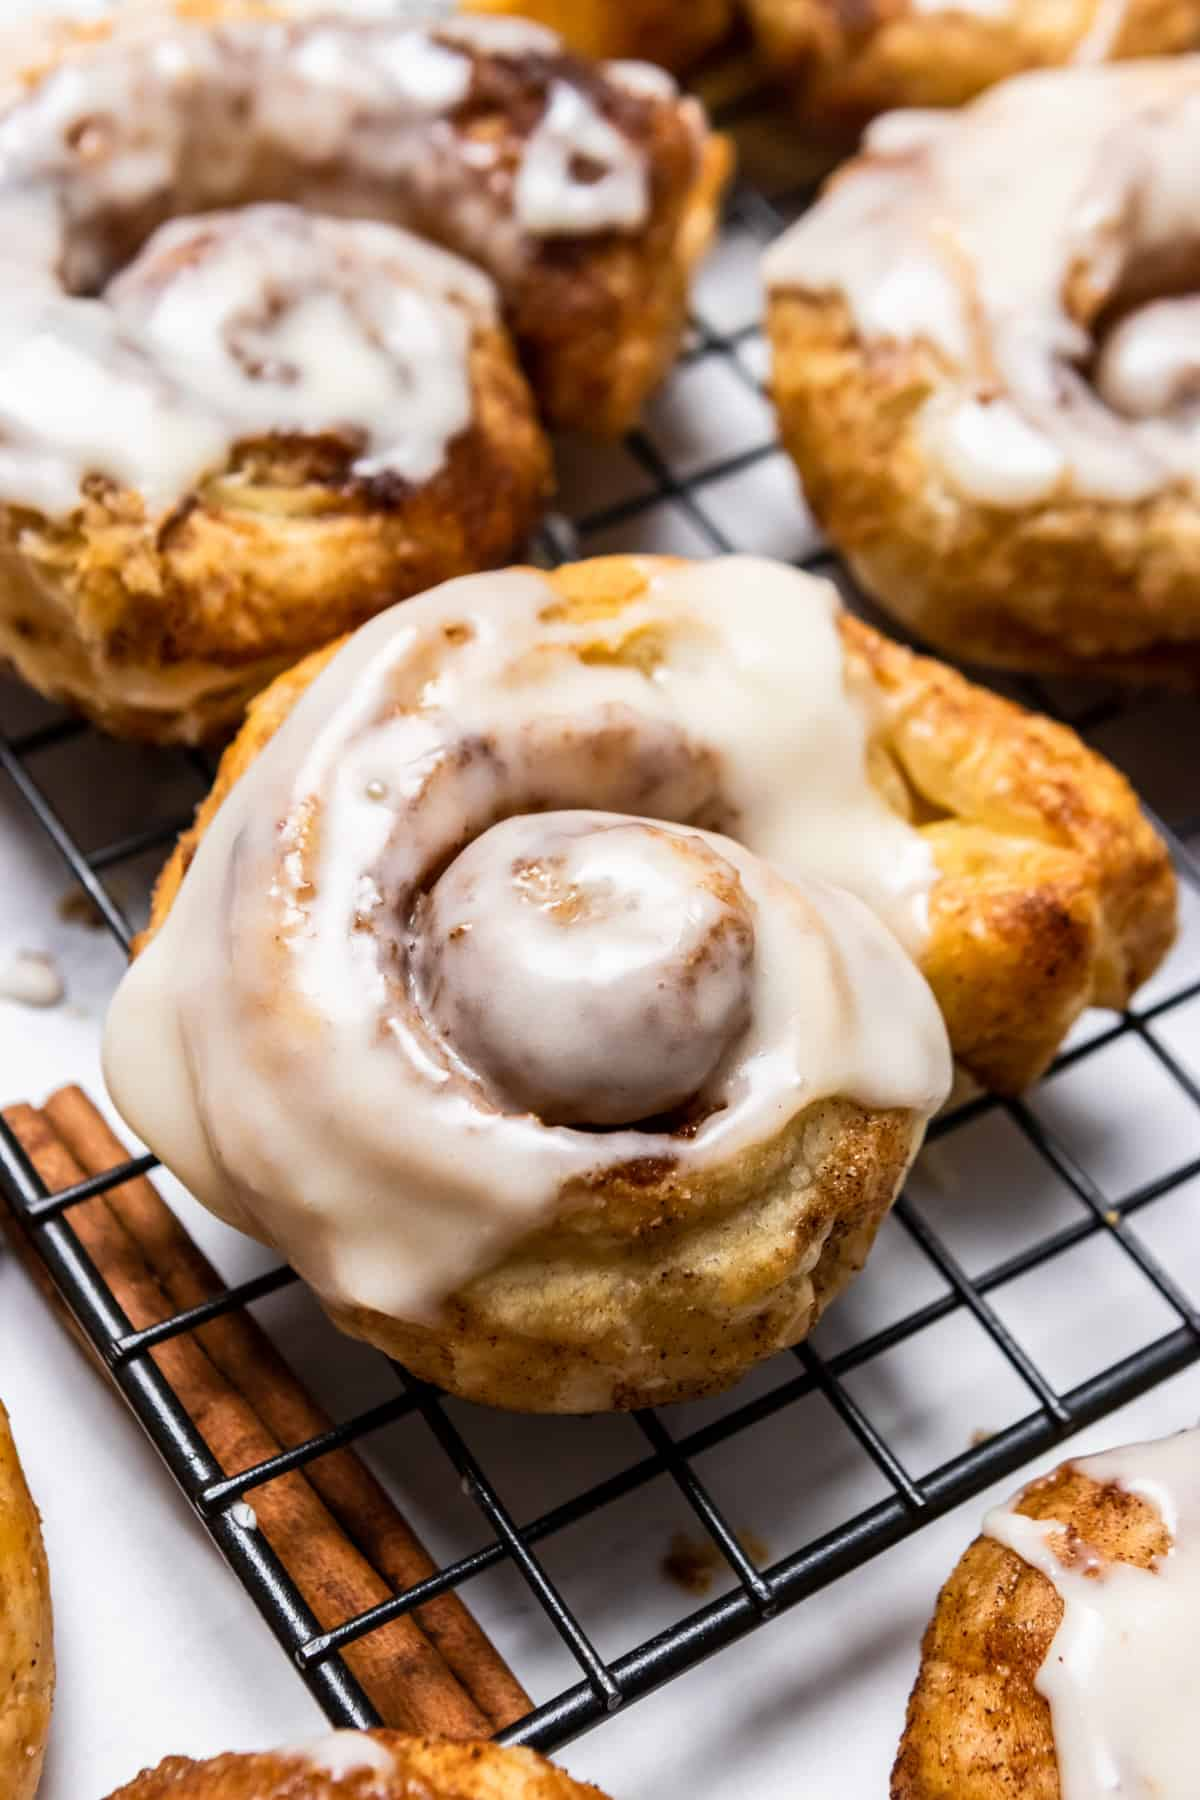 Puff pastry Cinnamon rolls with icing on cooling rack.